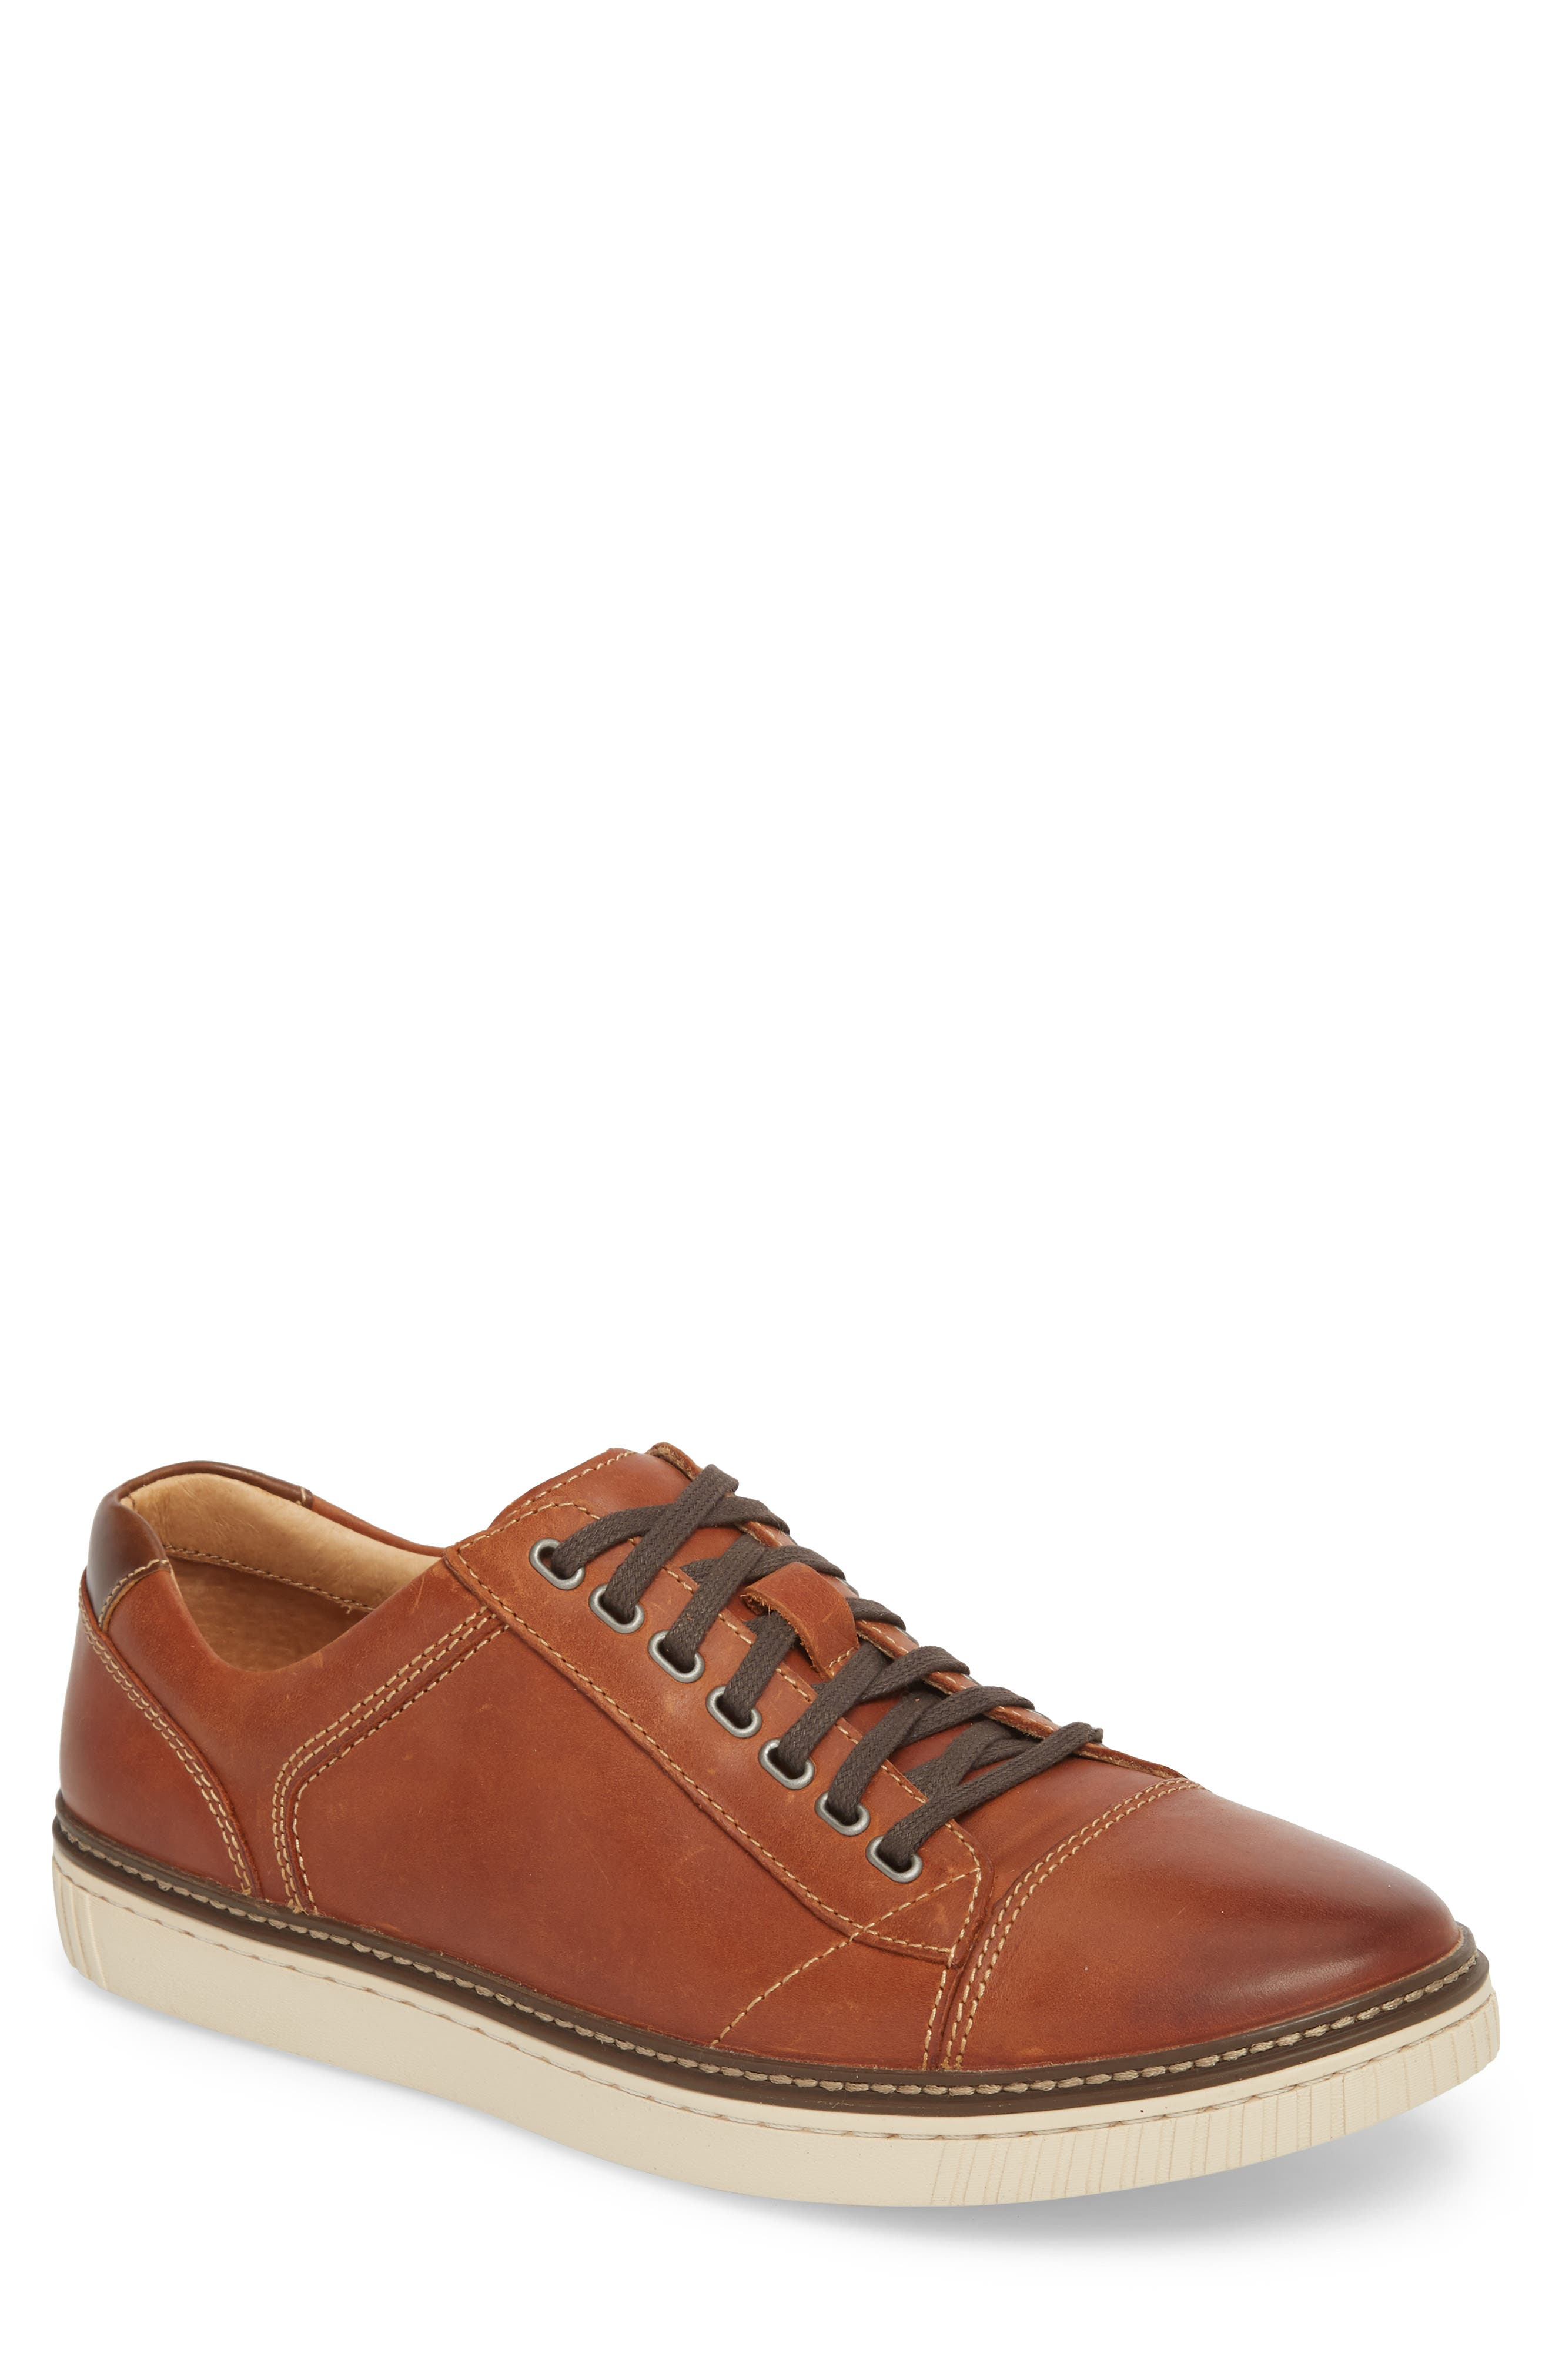 Wallace Low Top Sneaker,                         Main,                         color, TAN NUBUCK